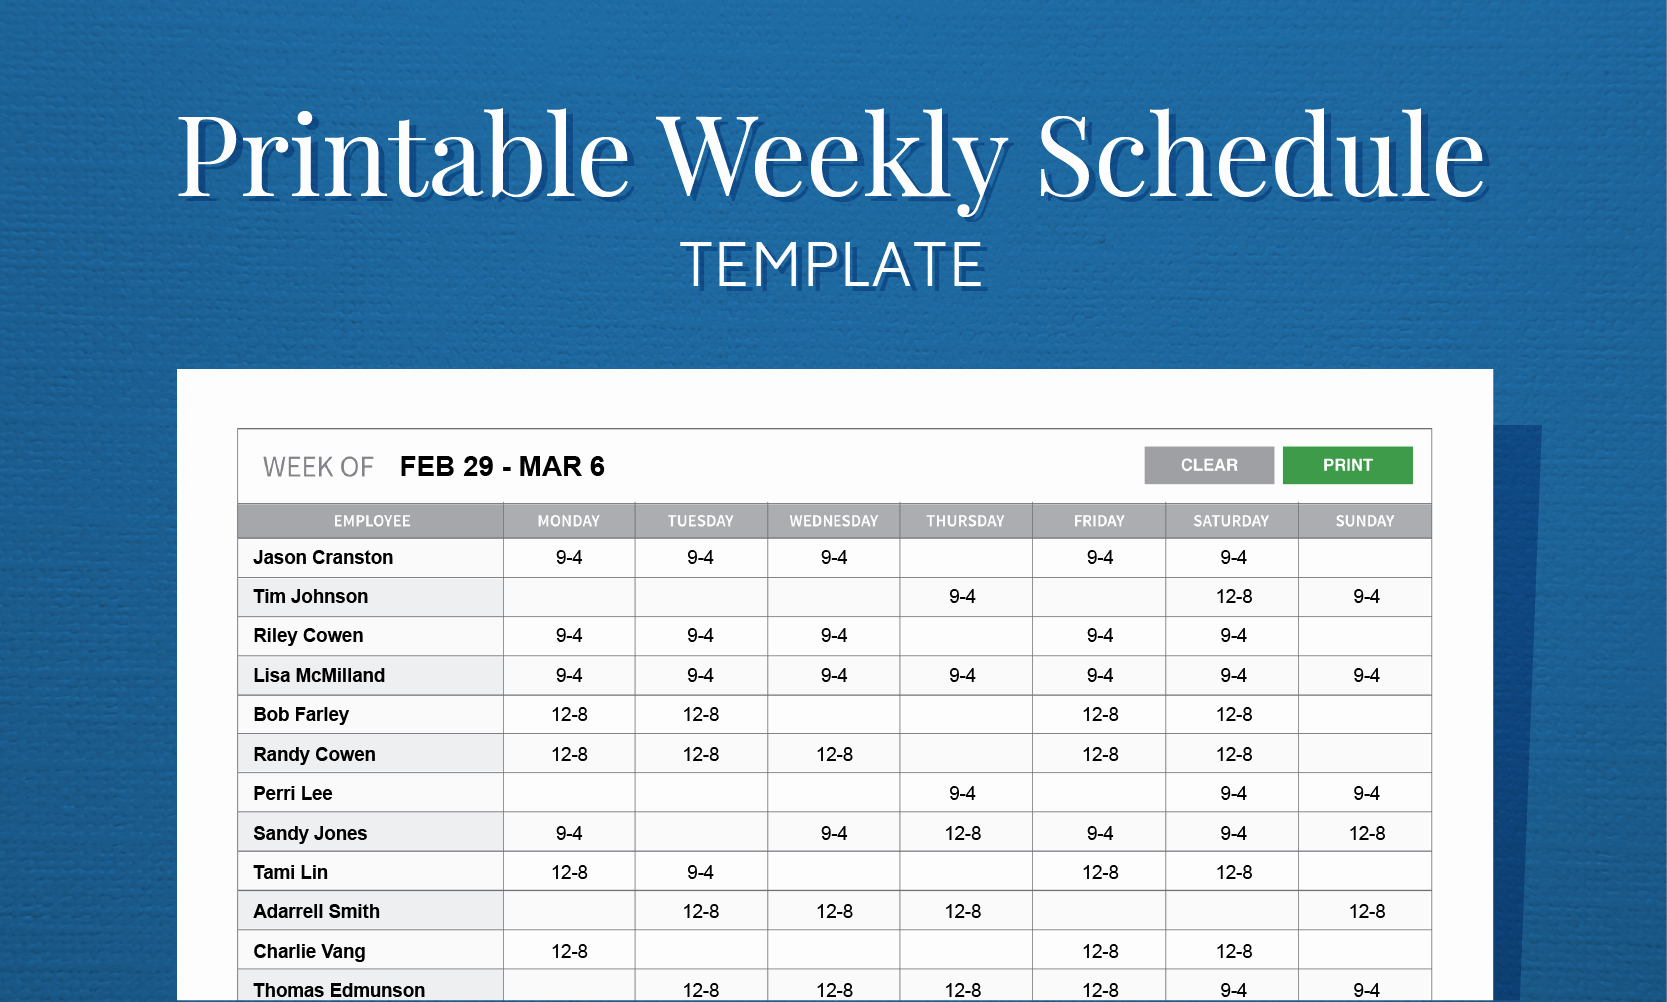 Employee Schedule Template Word Beautiful Free Printable Weekly Work Schedule Template for Employee